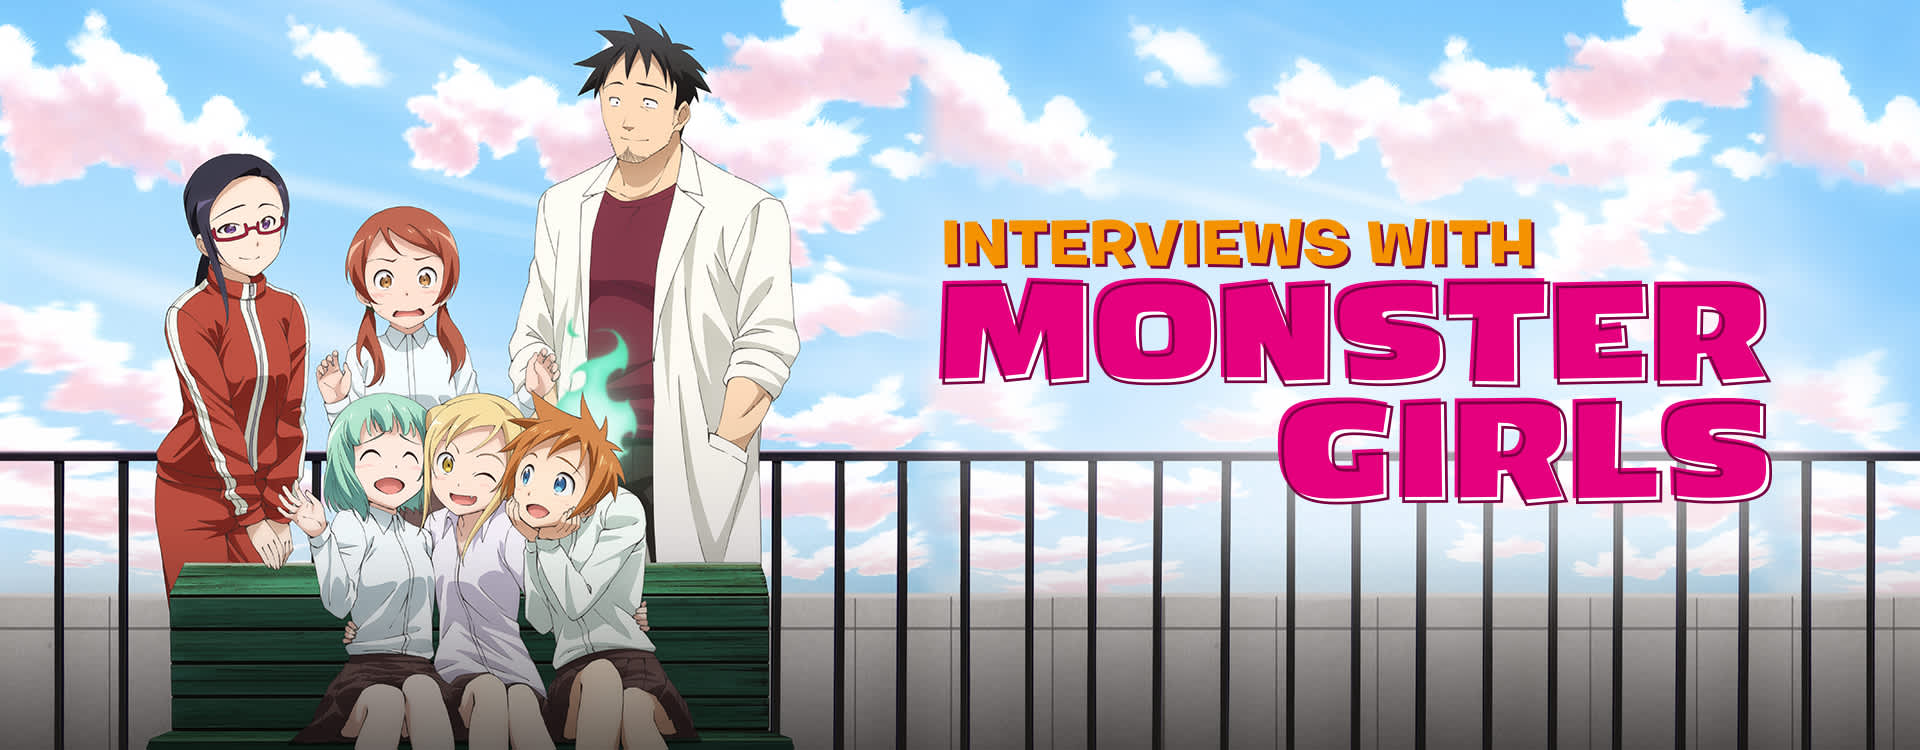 everyday life with monsters girl uncensored